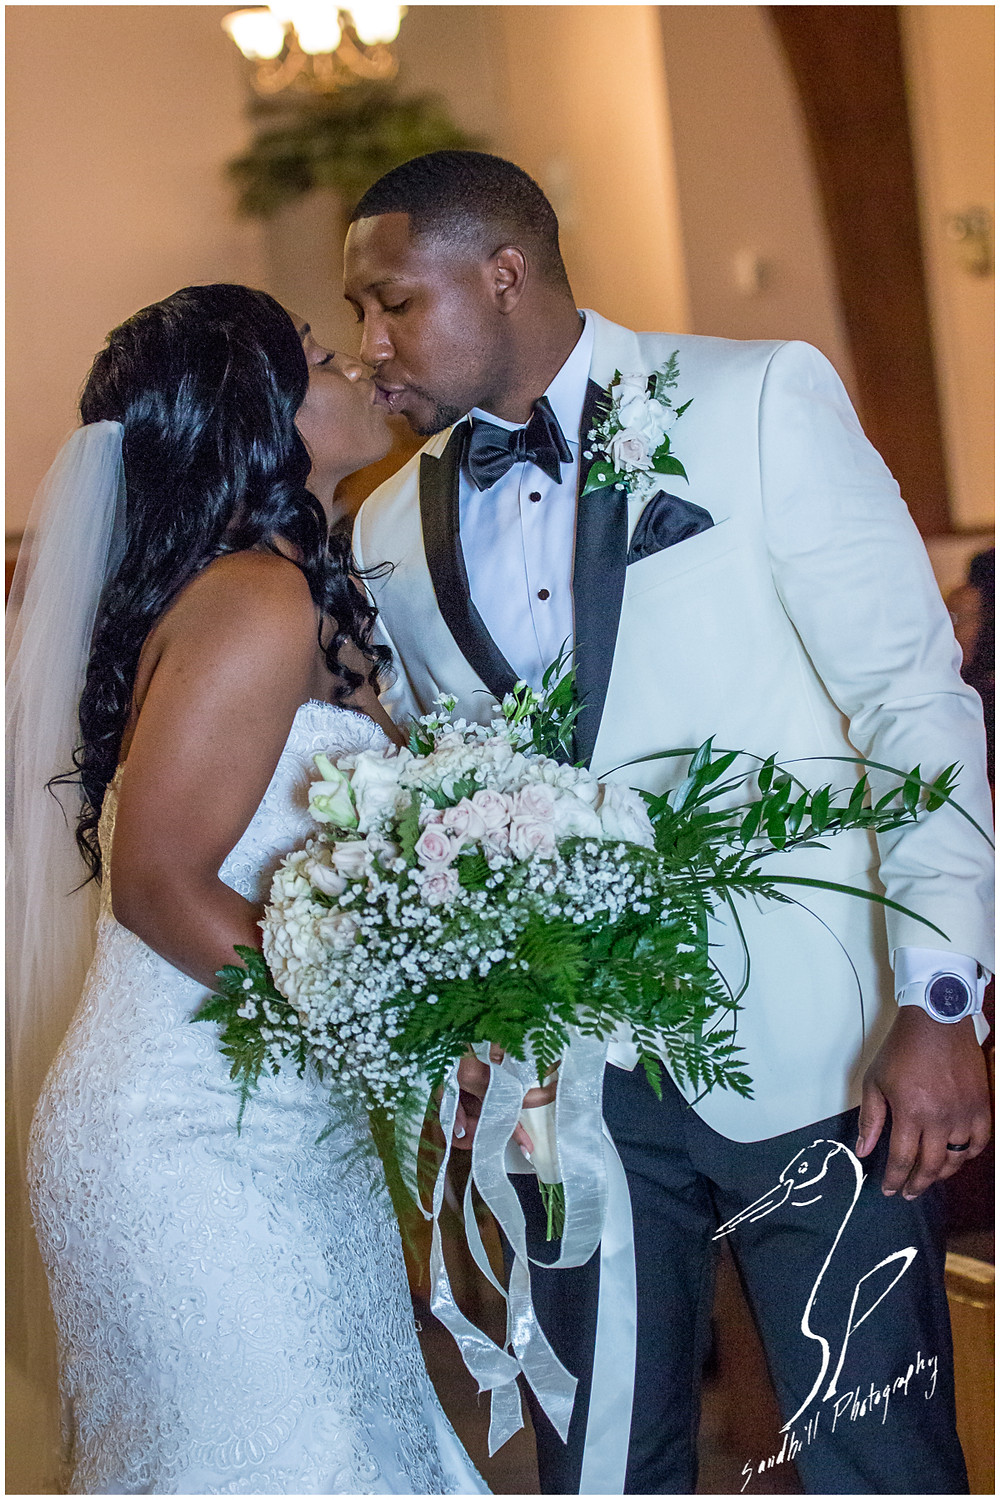 Bradenton Wedding Photographer, the bride and groom share their first kiss at United First Methodist Church of Seffner